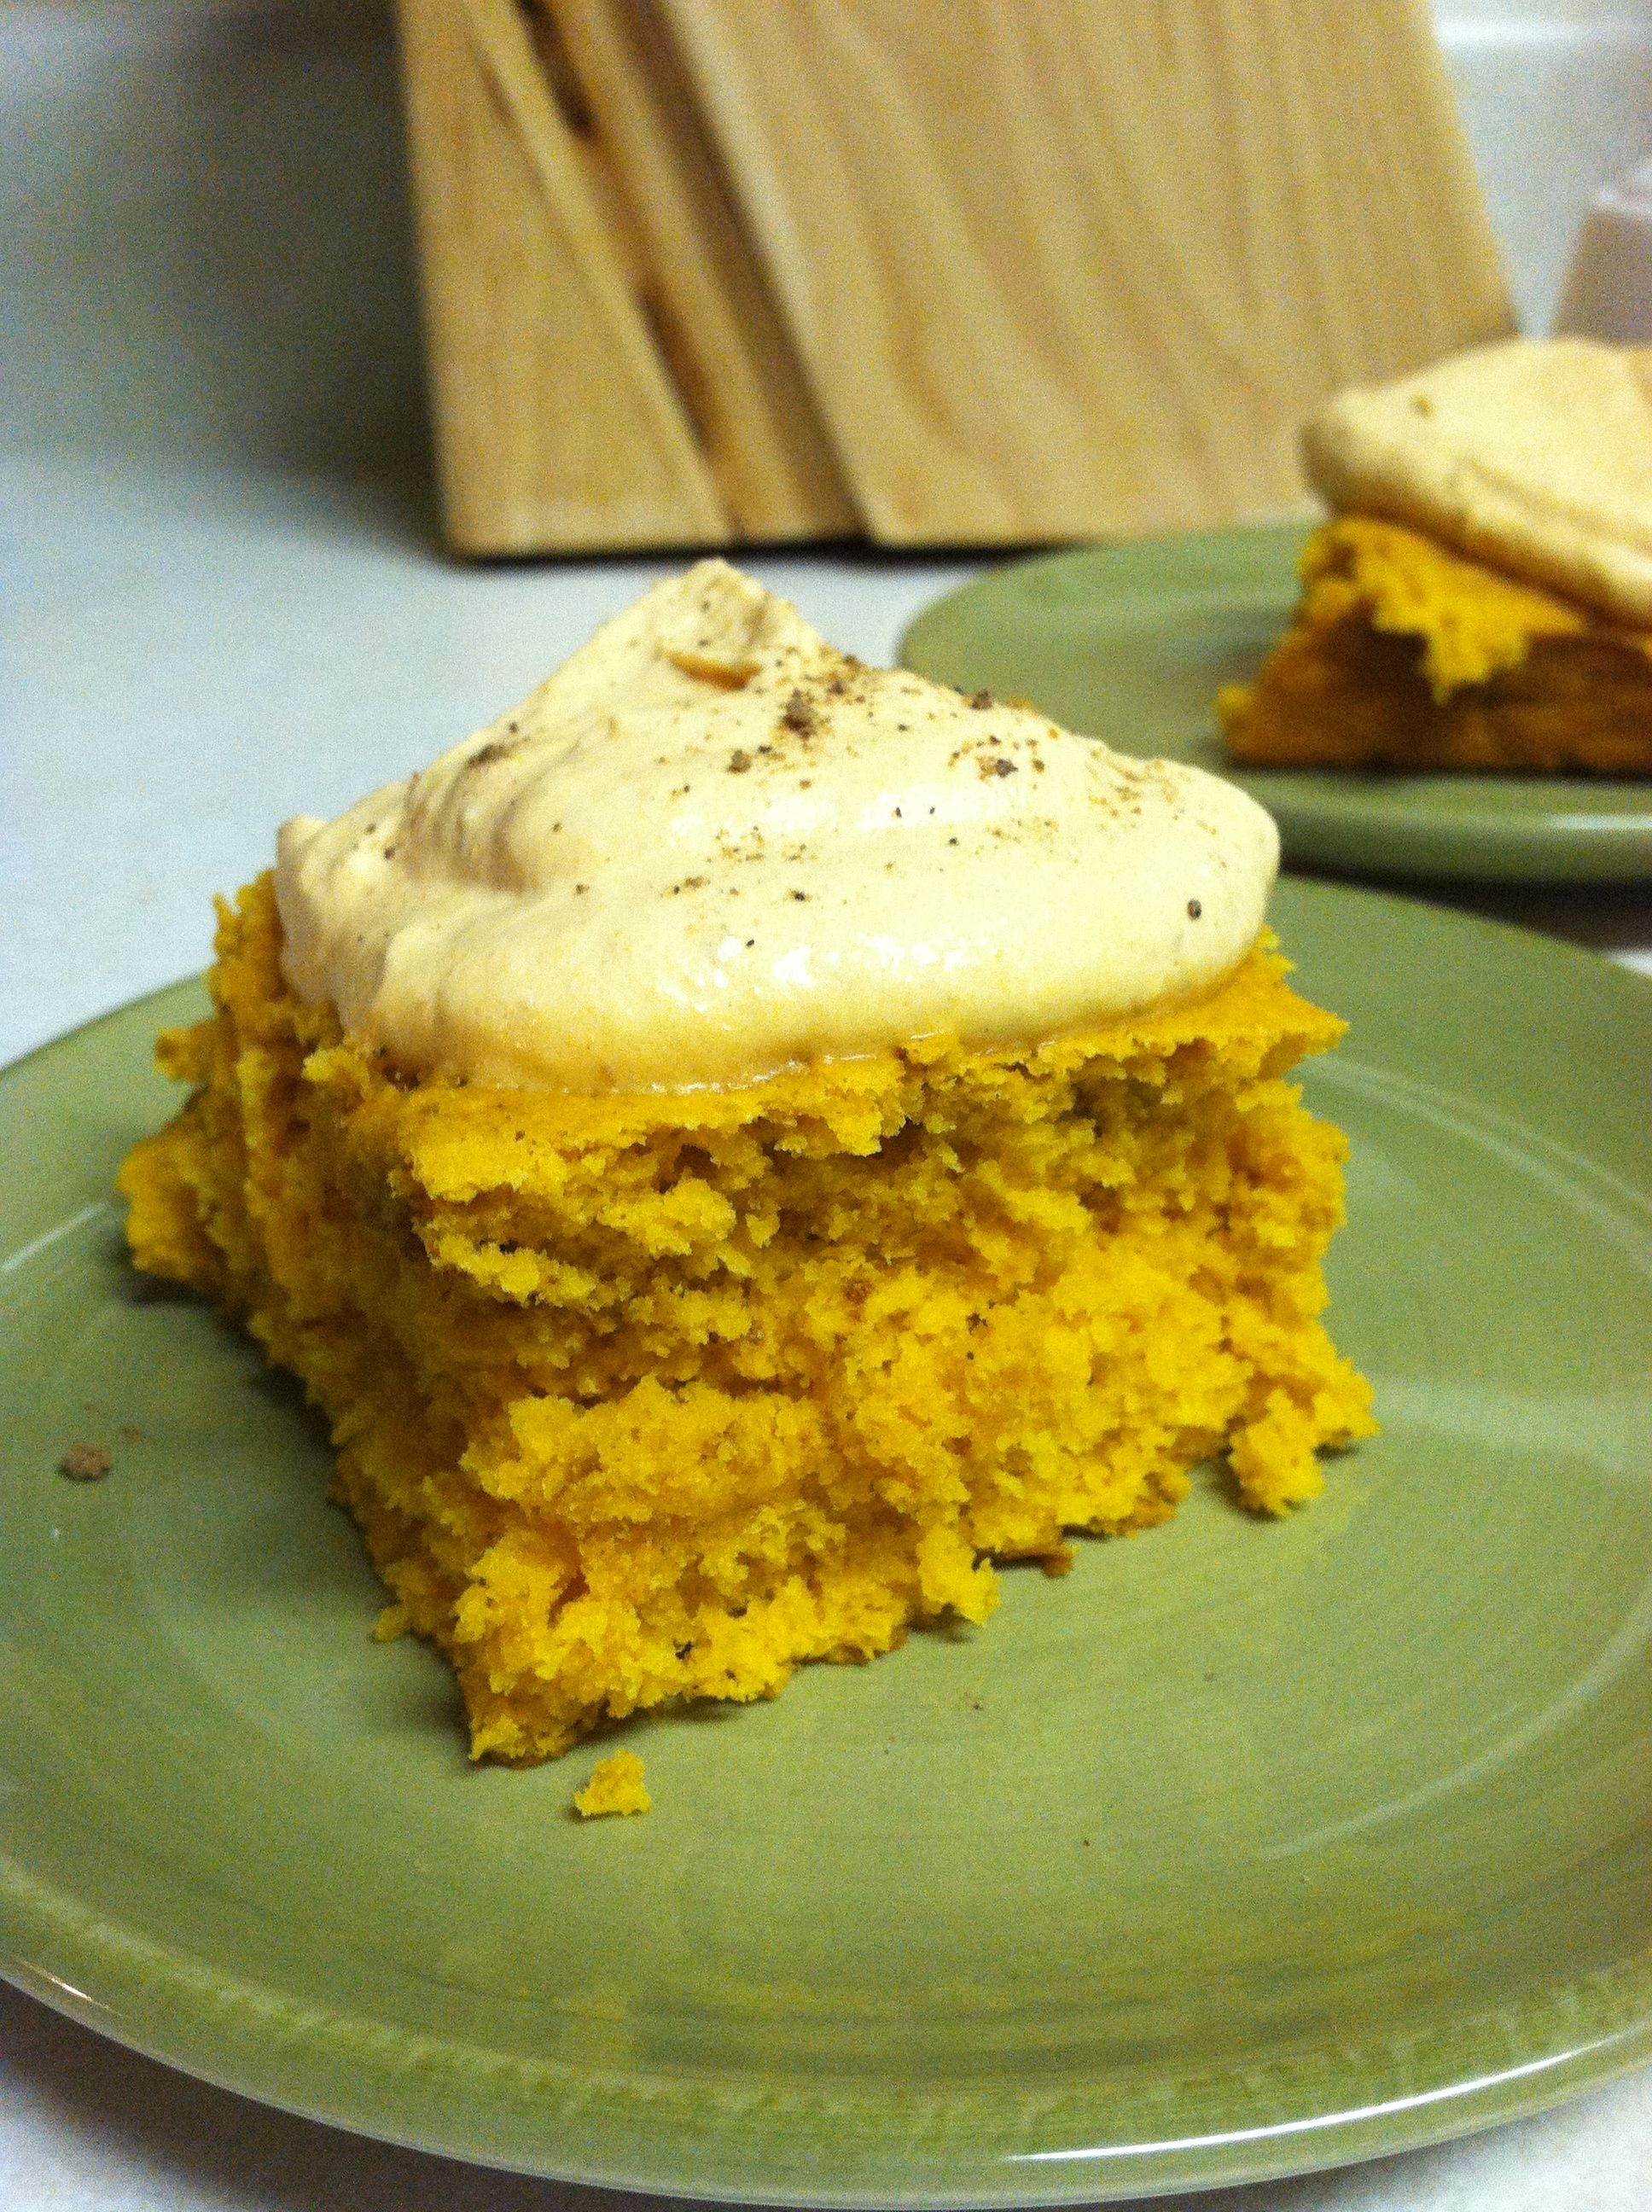 1 2 A Can Of Pumpkin Pie Filling Mixed With Yellow Cake